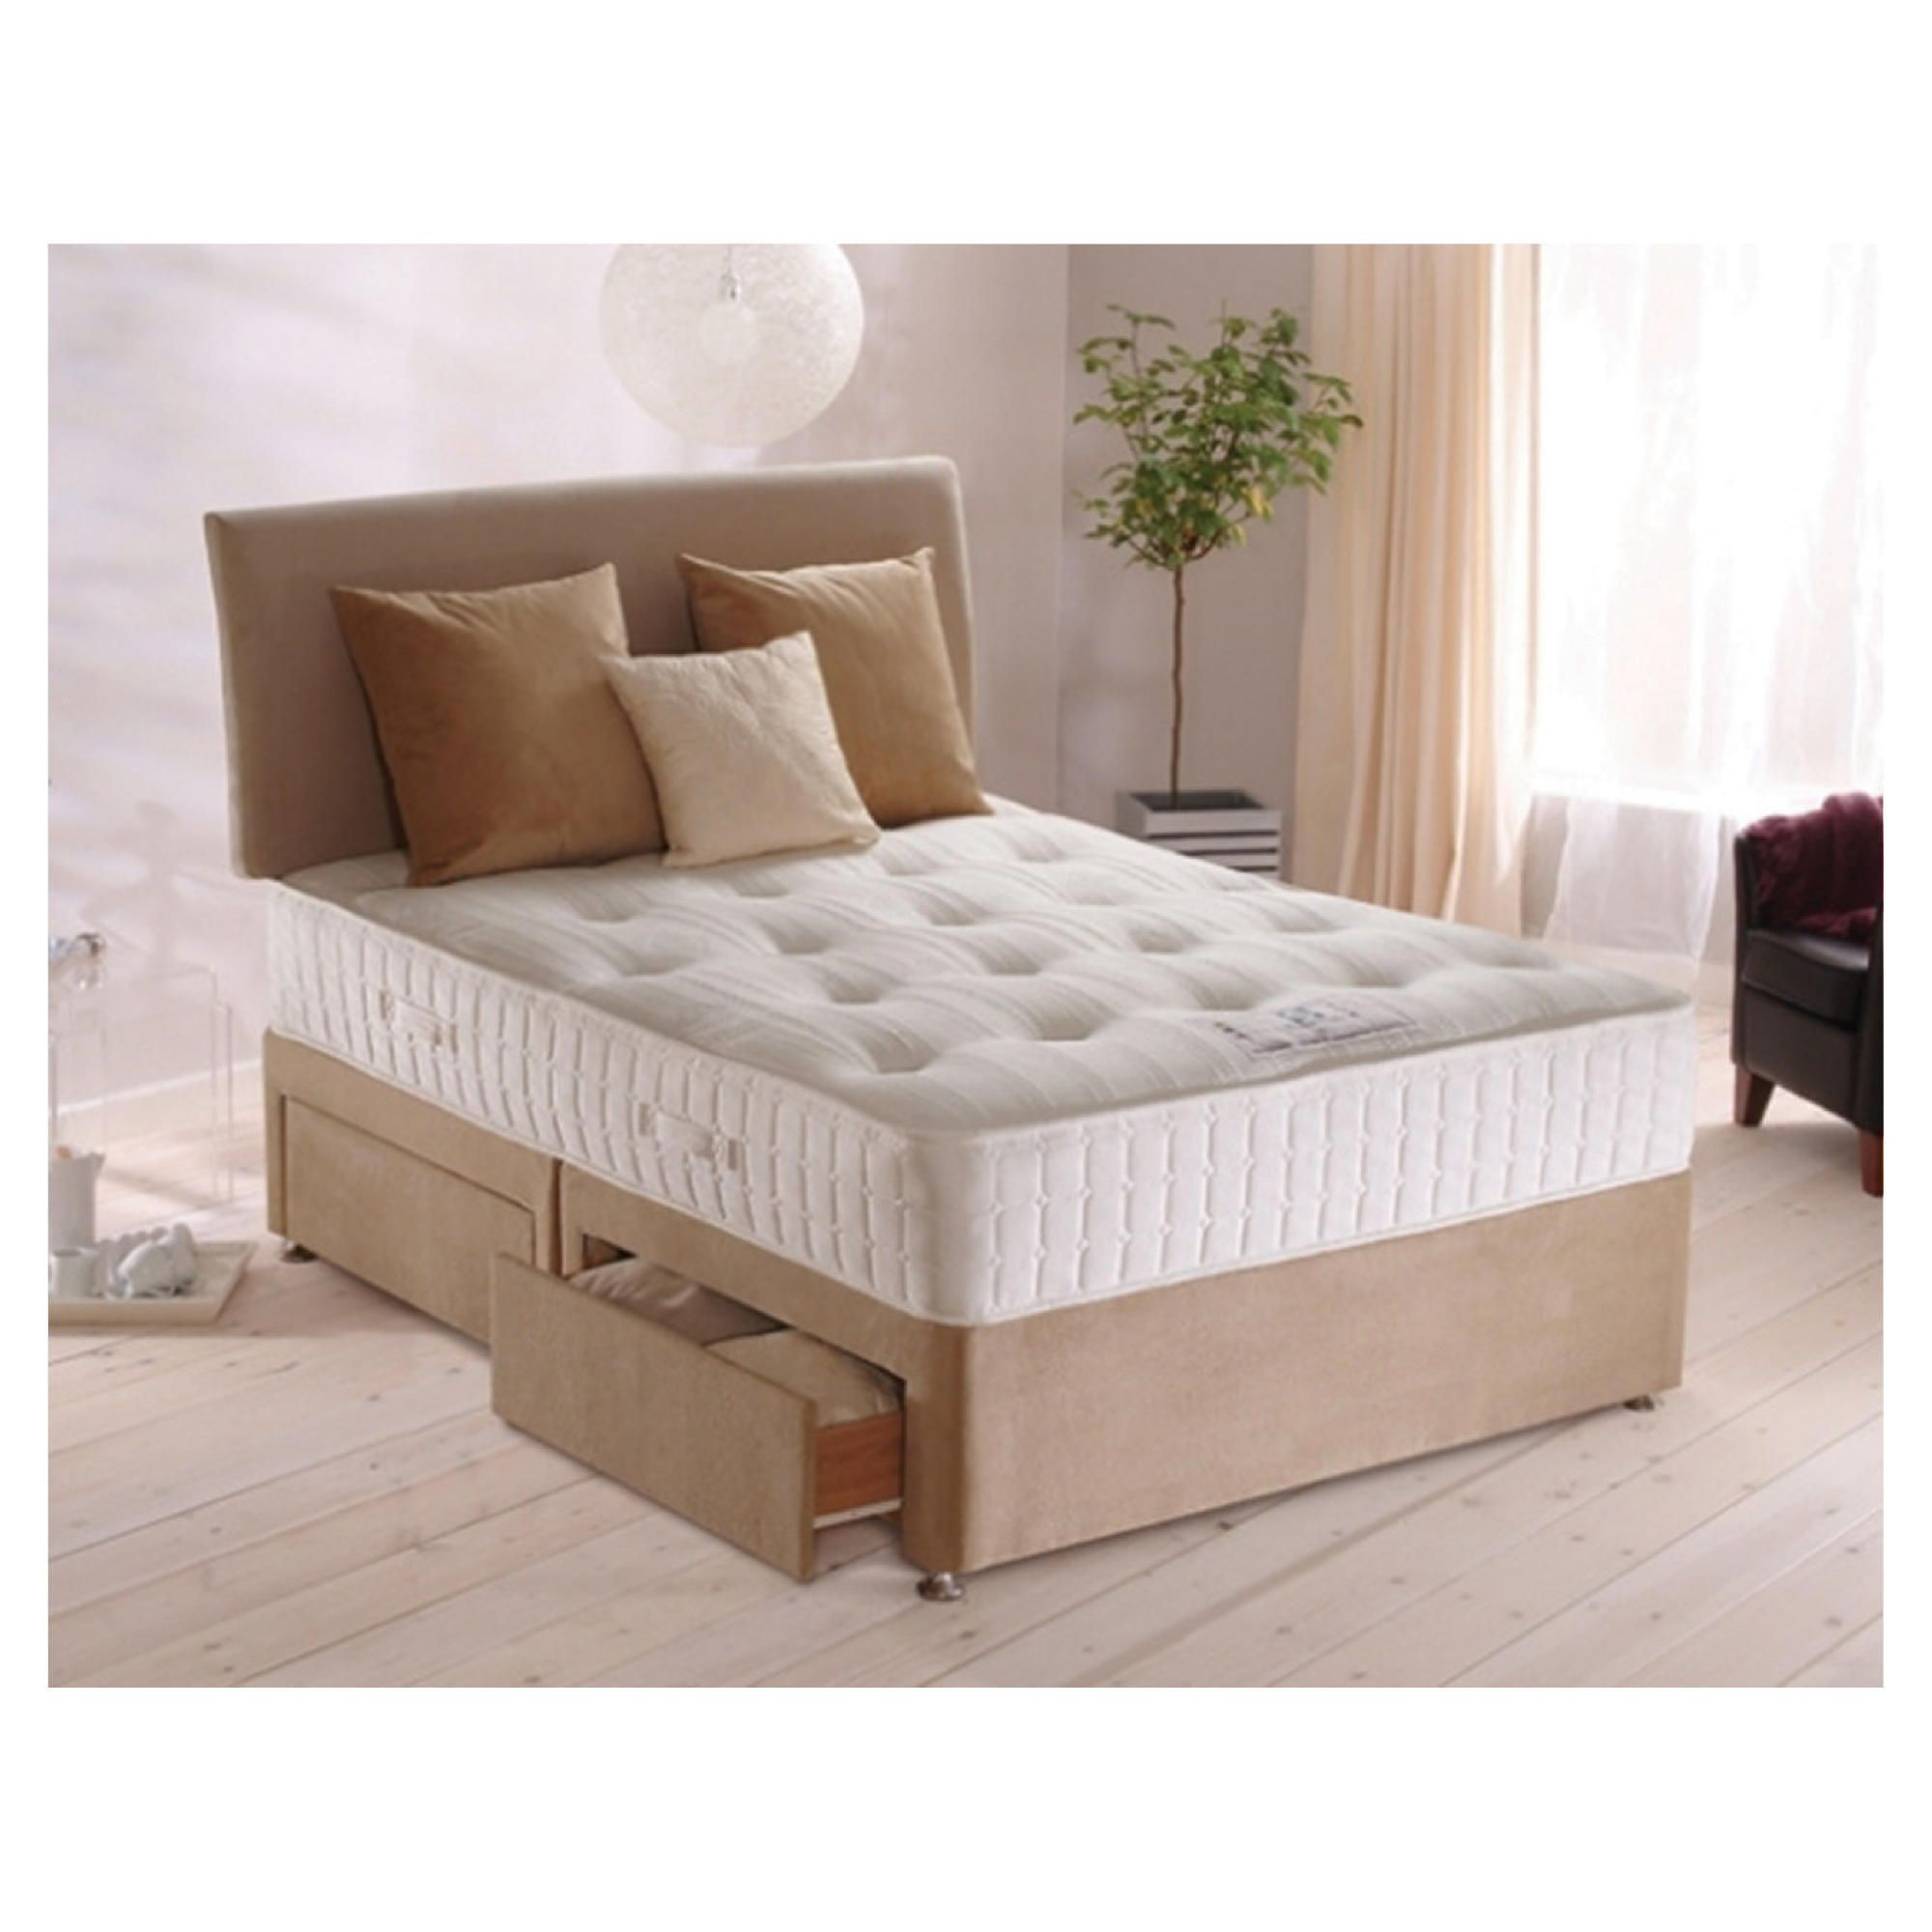 Sealy Purity Pocket Ortho King Non Storage Divan Bed at Tesco Direct